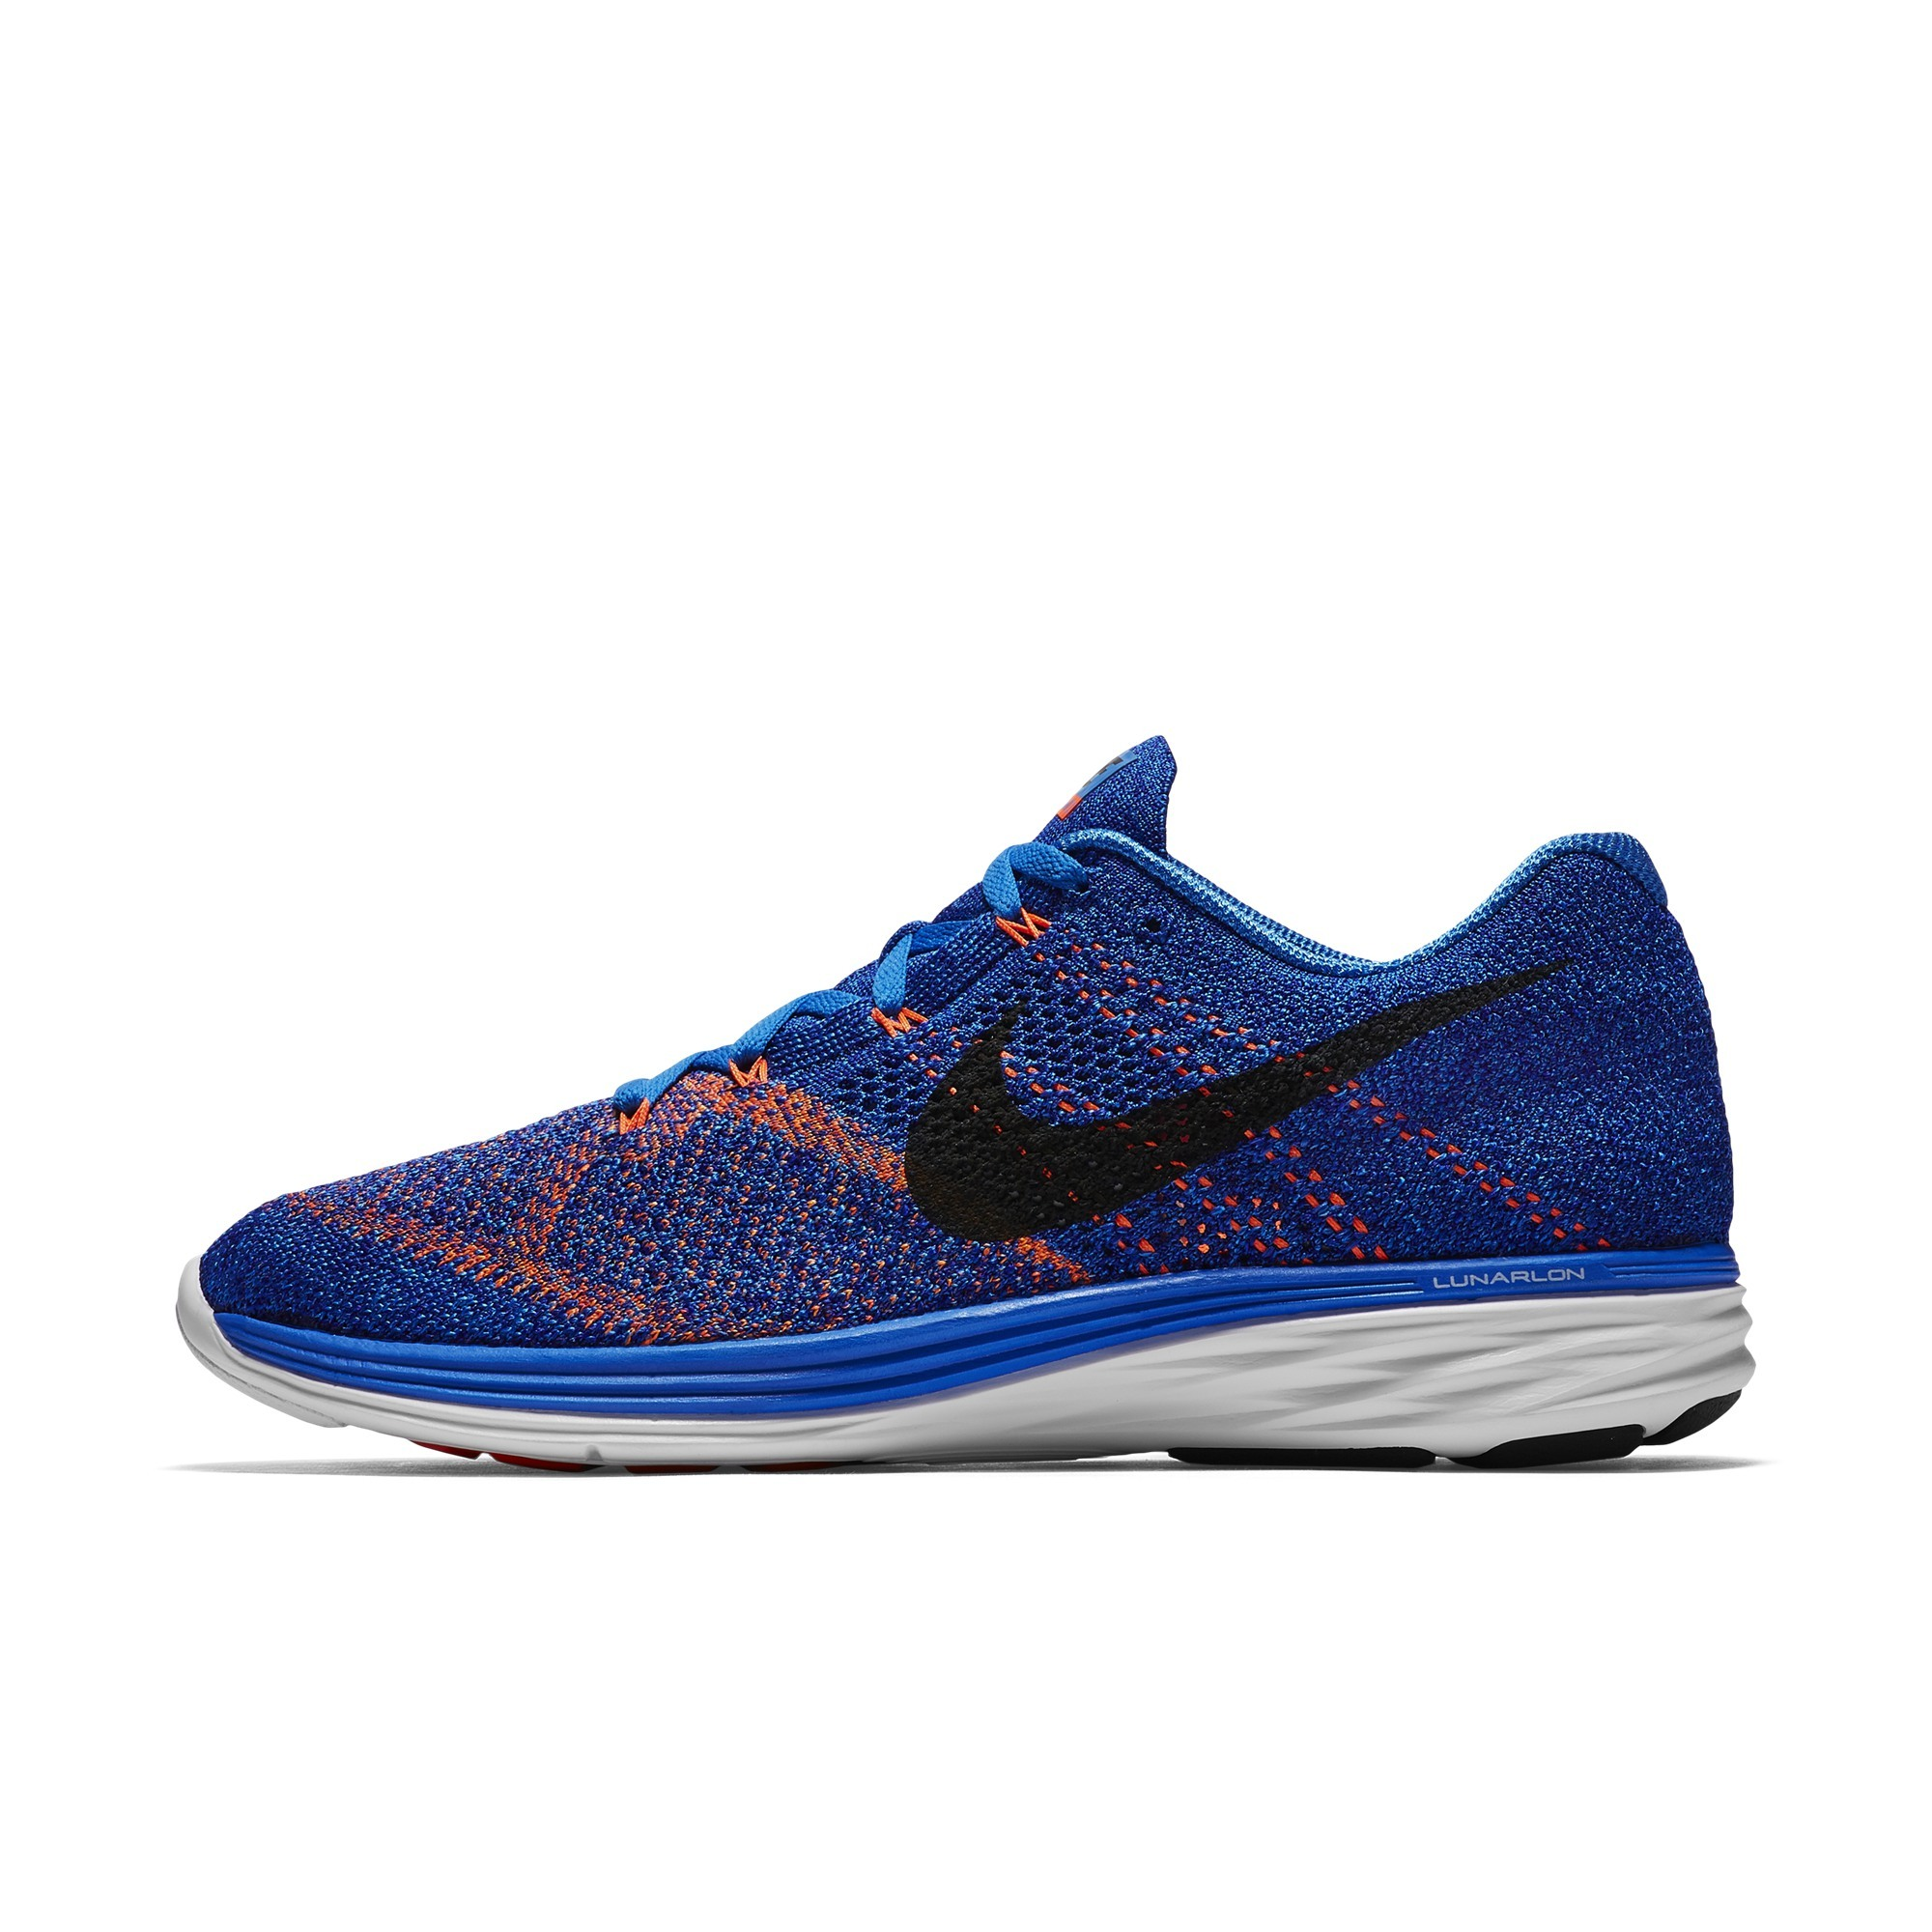 44e3df00a78ee Get Quotations · Nike men s nike flyknit lunar fly line woven LUNAR3 sports  shoes running shoes 698181-405